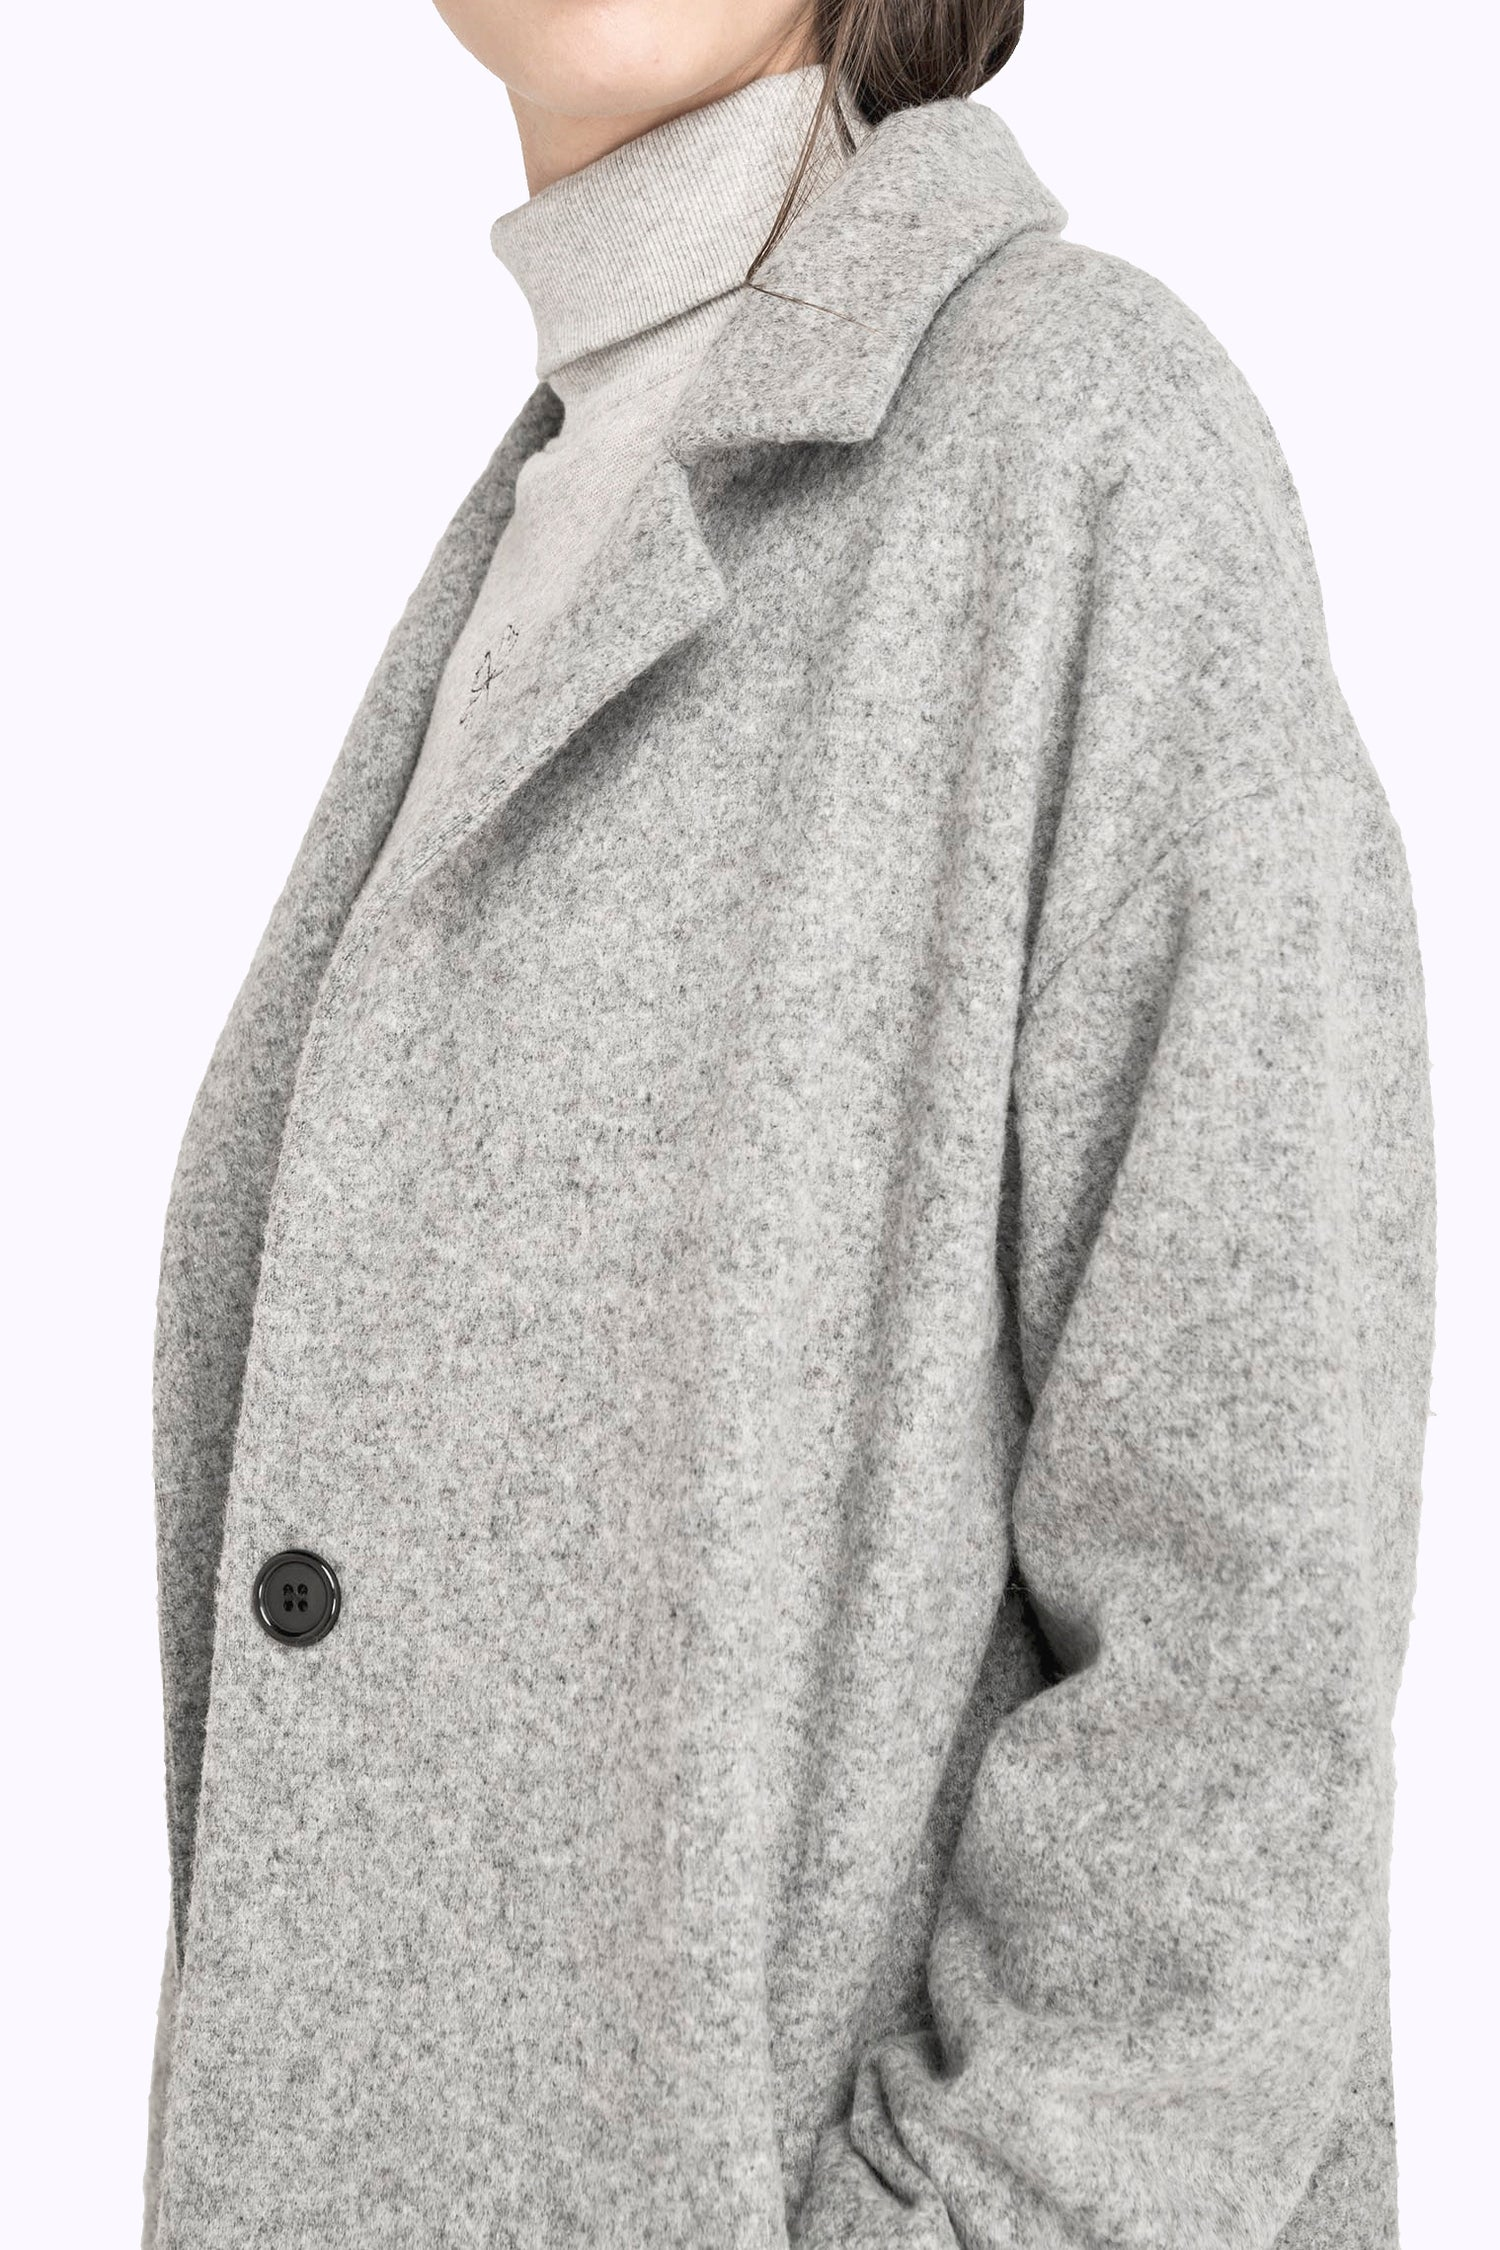 Image of Manteau long drap de laine FRANÇOIS 269€ -50%